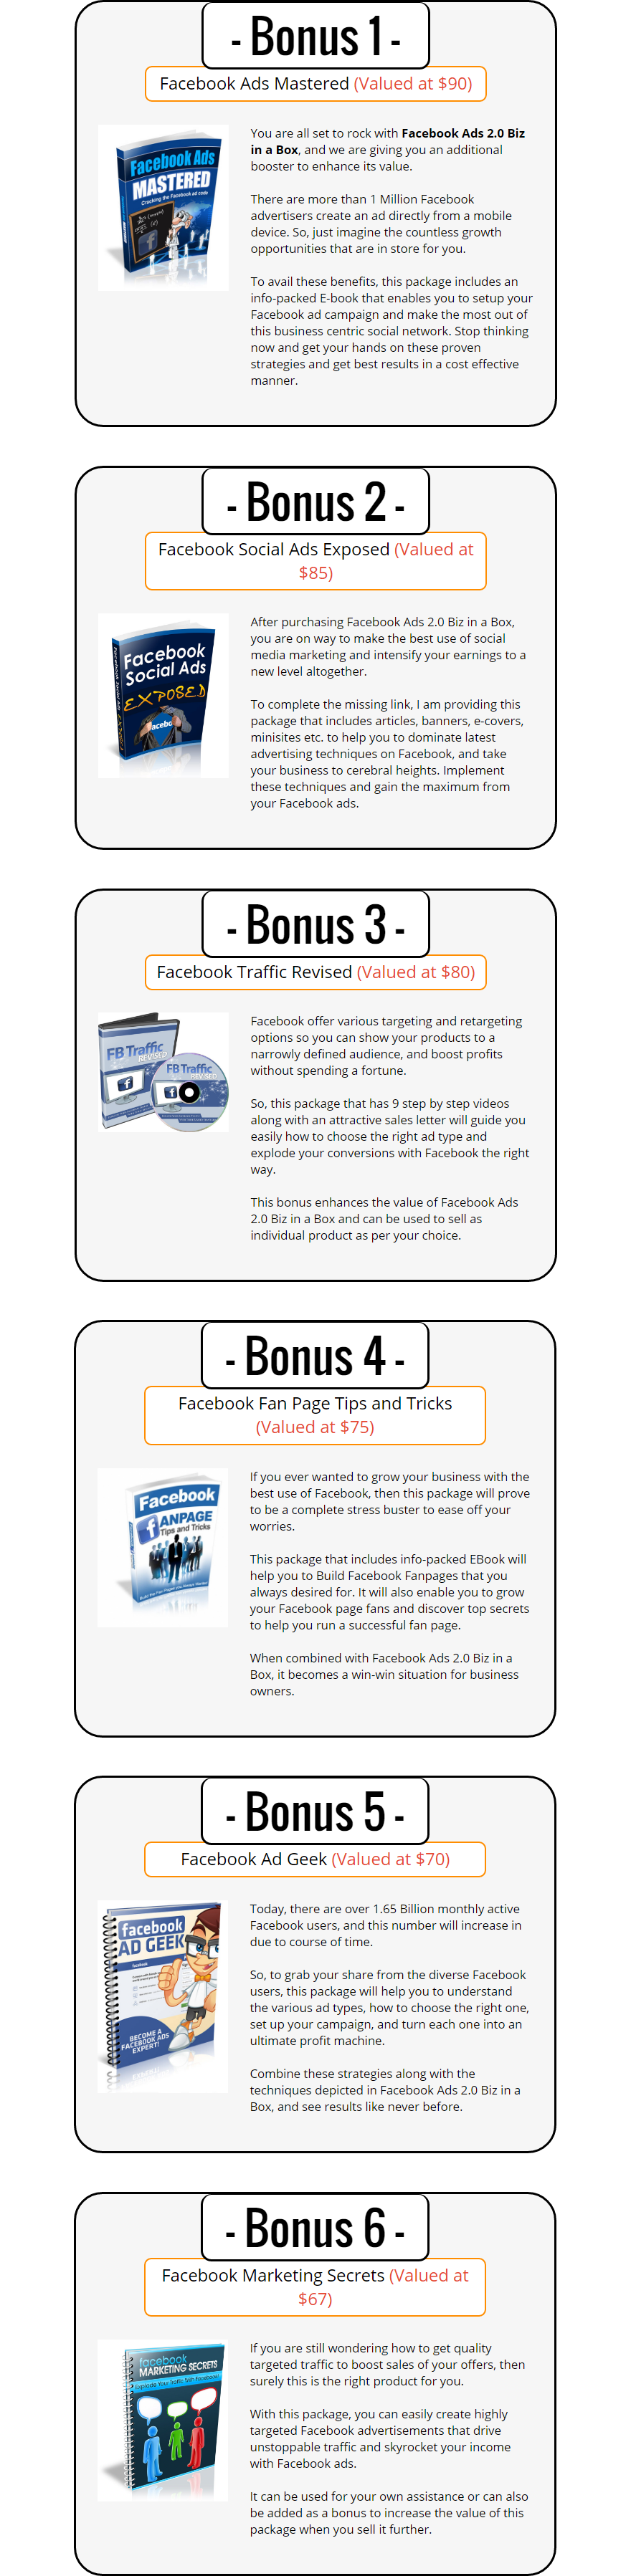 Facebook Ads V2 Biz in a Box Bonuses